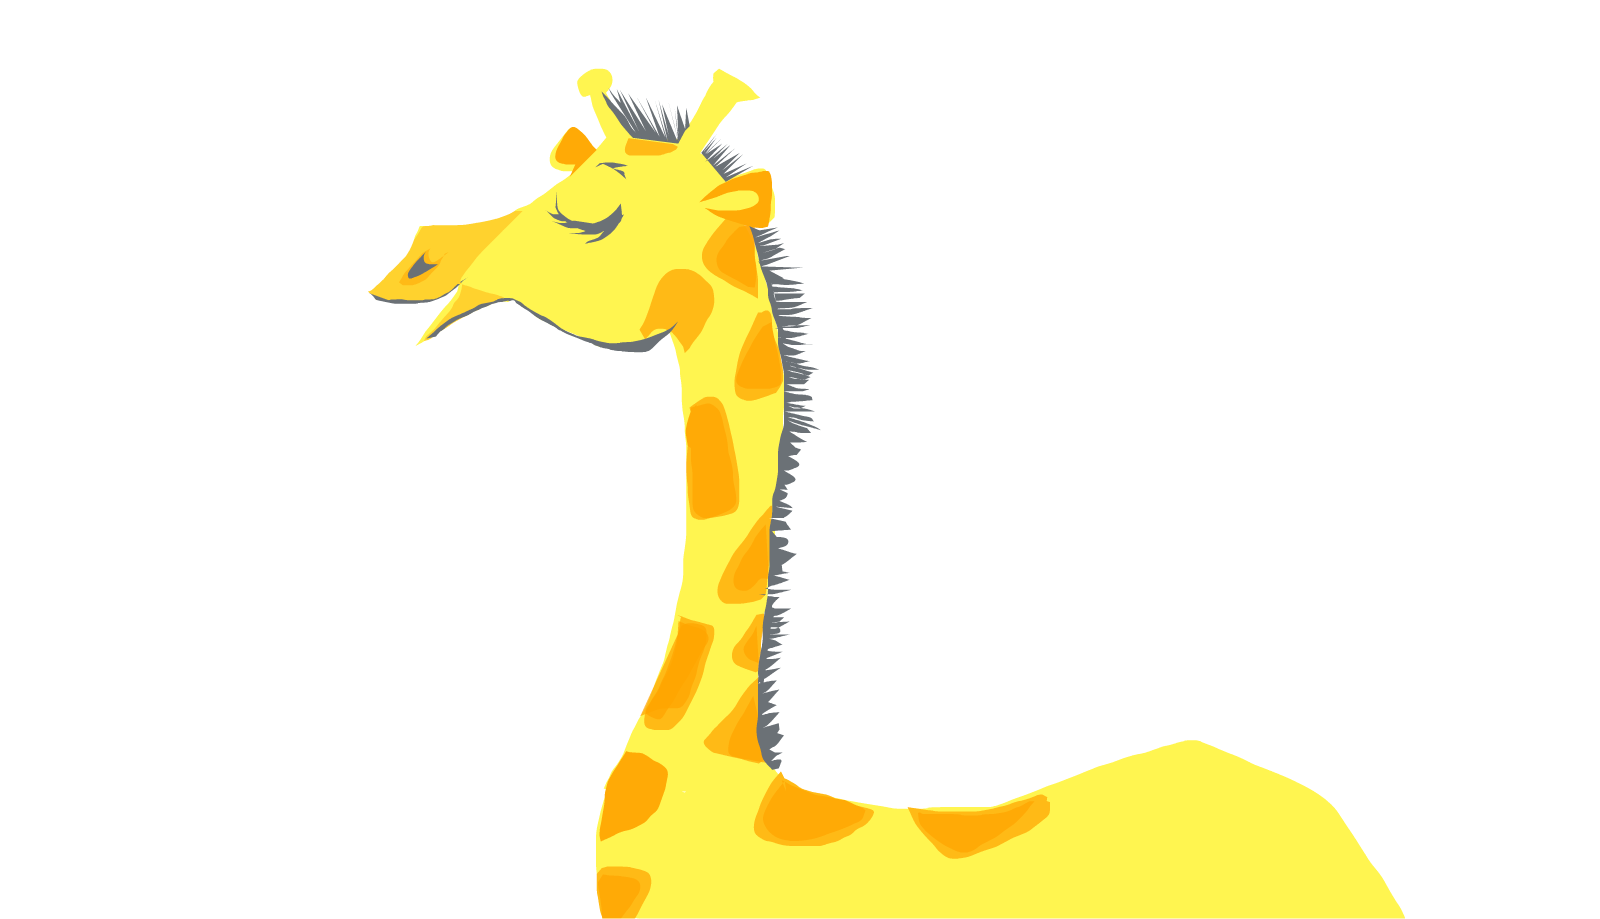 Daily Challenge #2. Give the Giraffe a Scarf